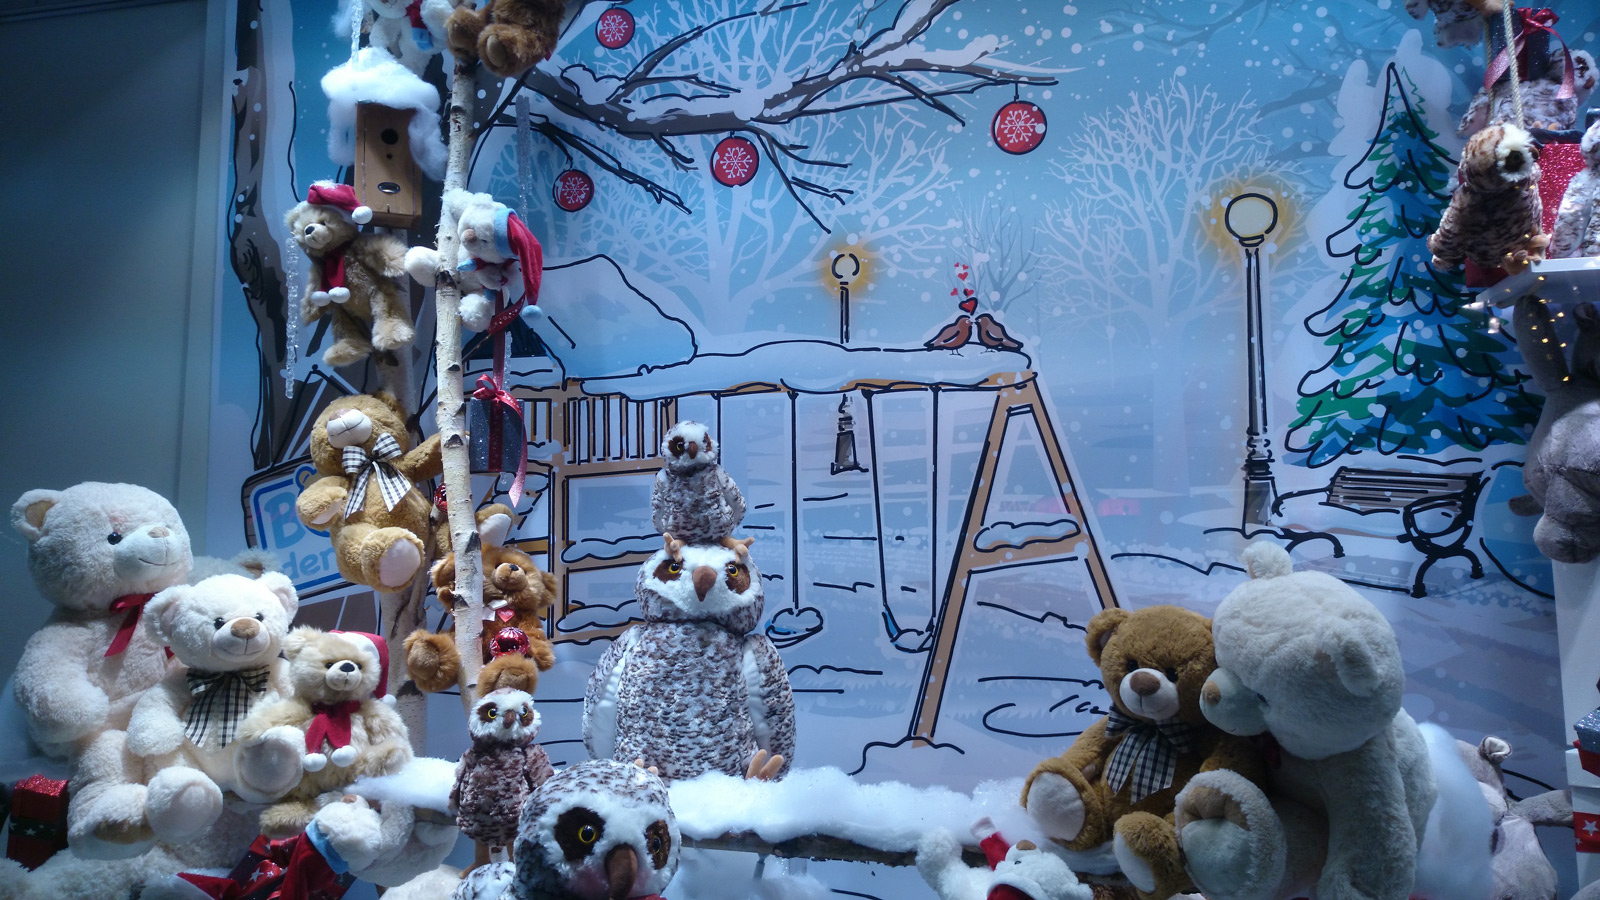 Friendly window display with plush bears and plush owls, and a wall painted with a winter theme.